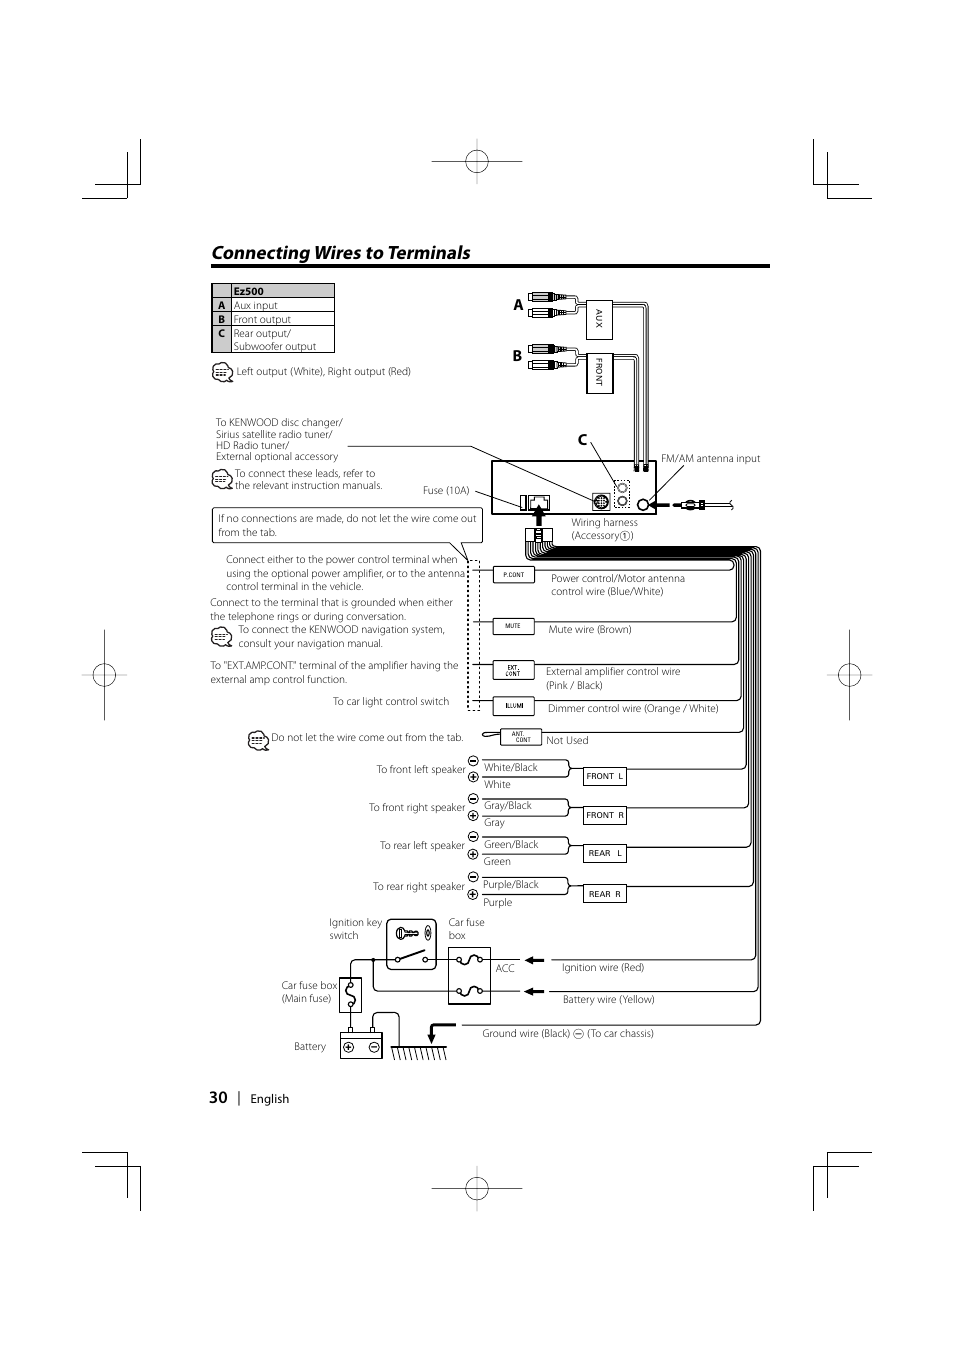 Connecting Wires To Terminals, Ab C Kenwood Ez500 User Manual Kenwood Home Stereo  Wiring Diagram Kenwood Ez500